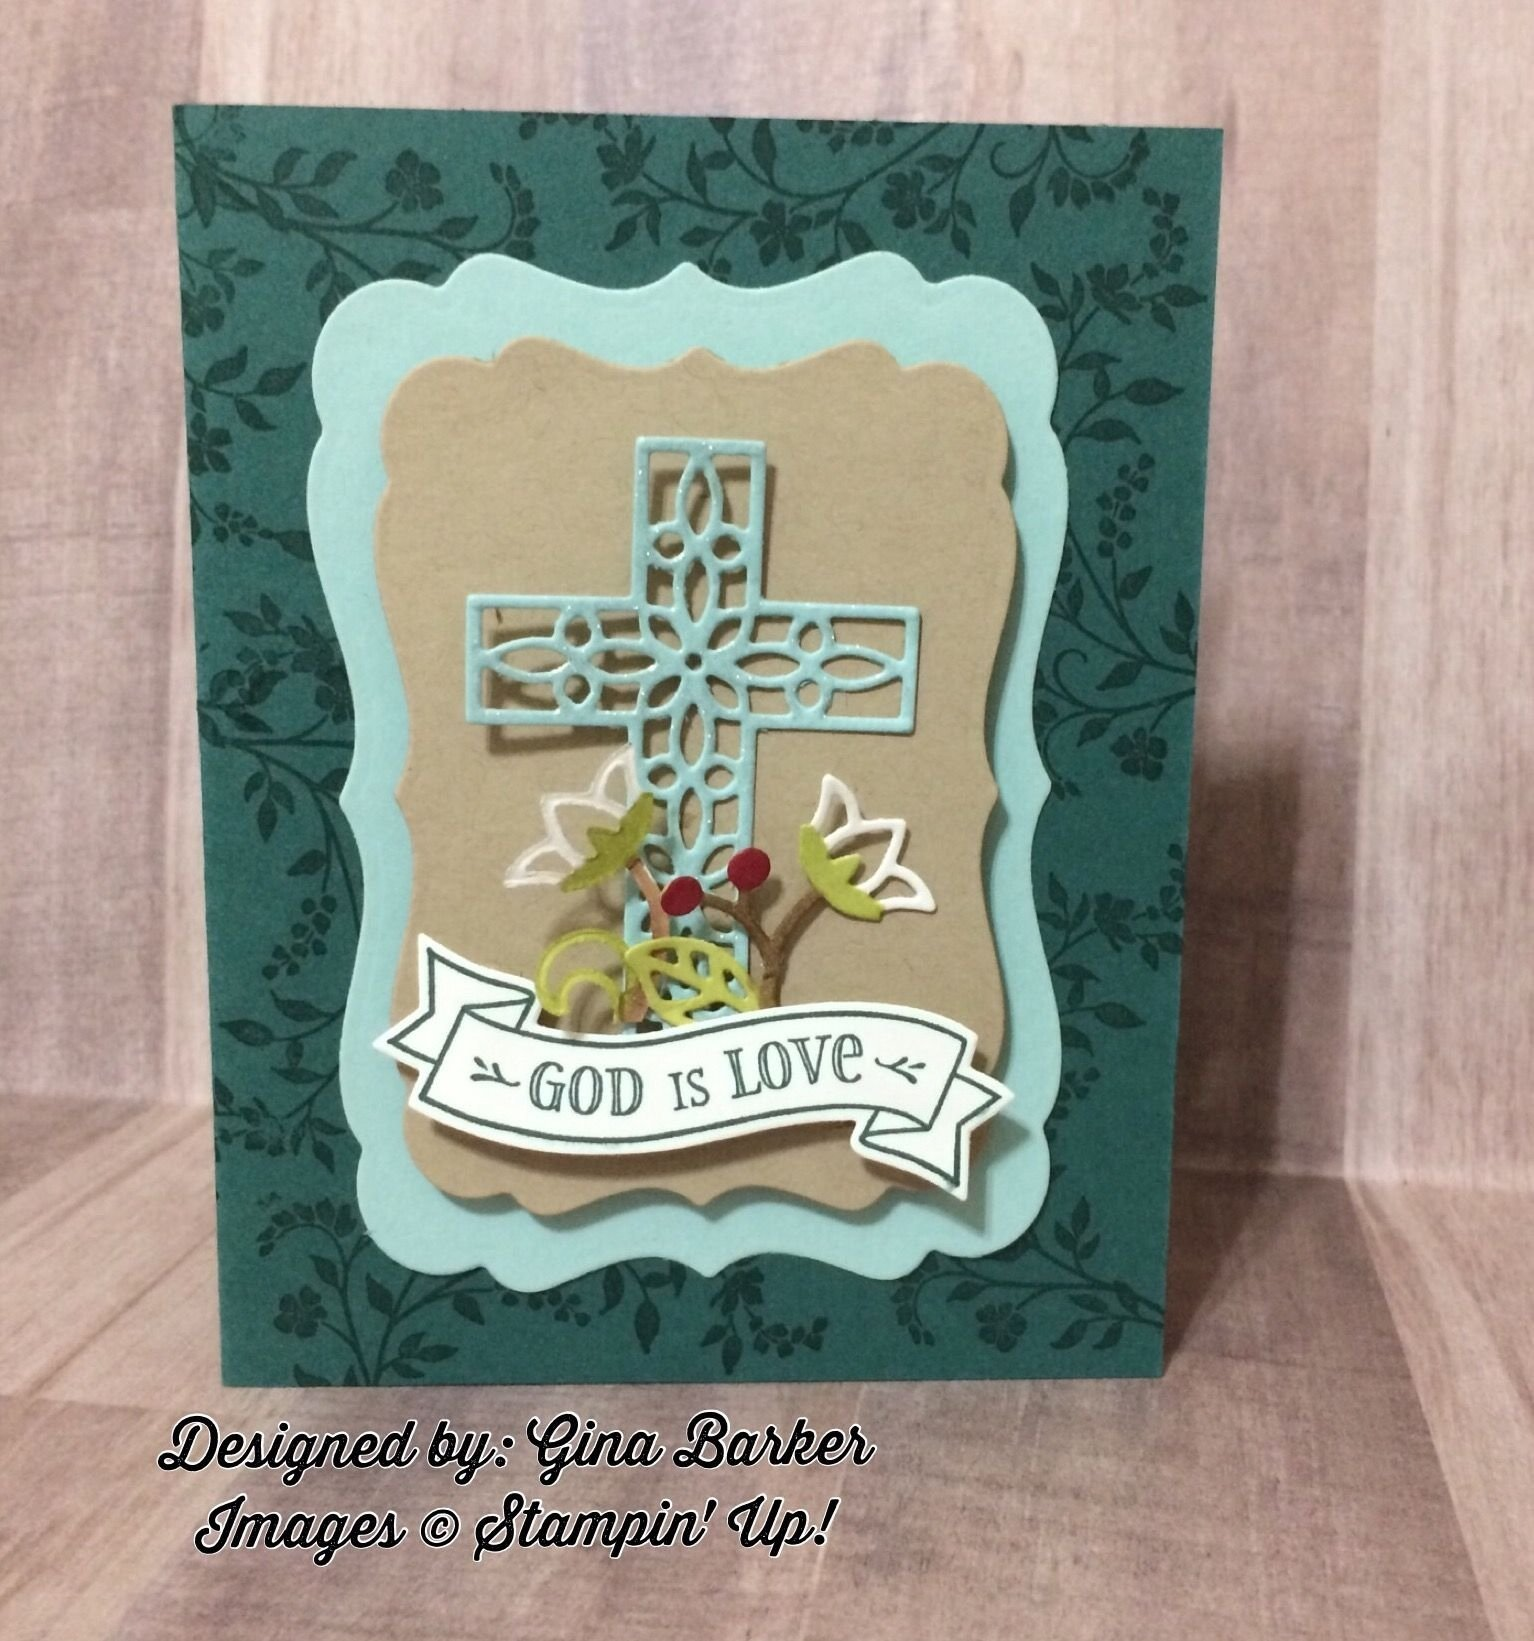 10 Lovable Stampin Up Easter Card Ideas stampin up 2018 occasions catalog image from hold on to hope